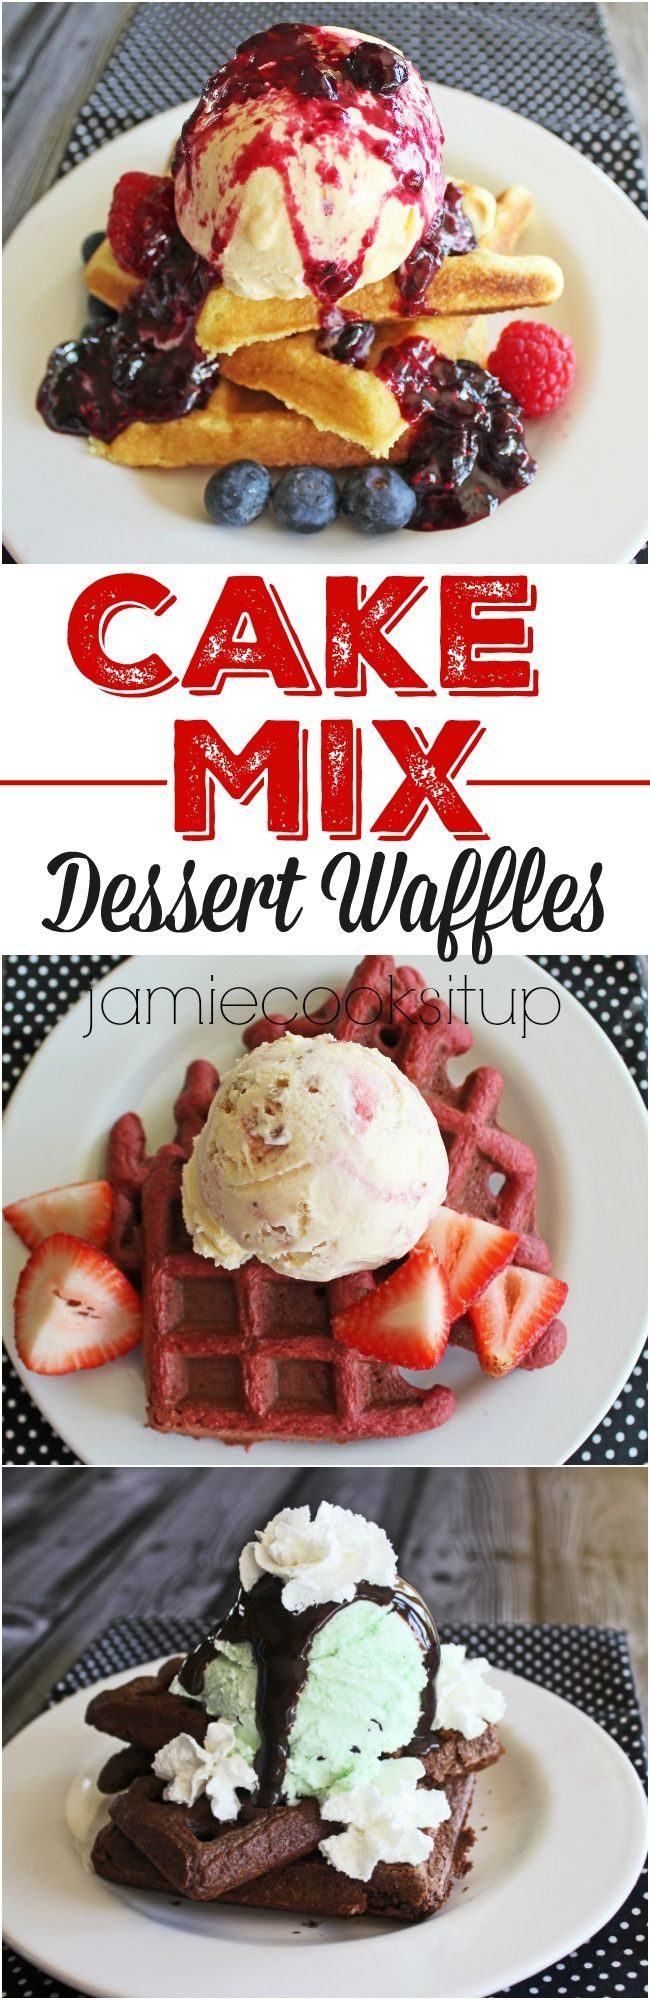 Cake Mix Dessert Waffles from Jamie Cooks It Up! These are so easy and delicious! You can use any flavor of cake mix and then load them down with ice cream and any kind of topping you choose. They would make a fun party dessert!